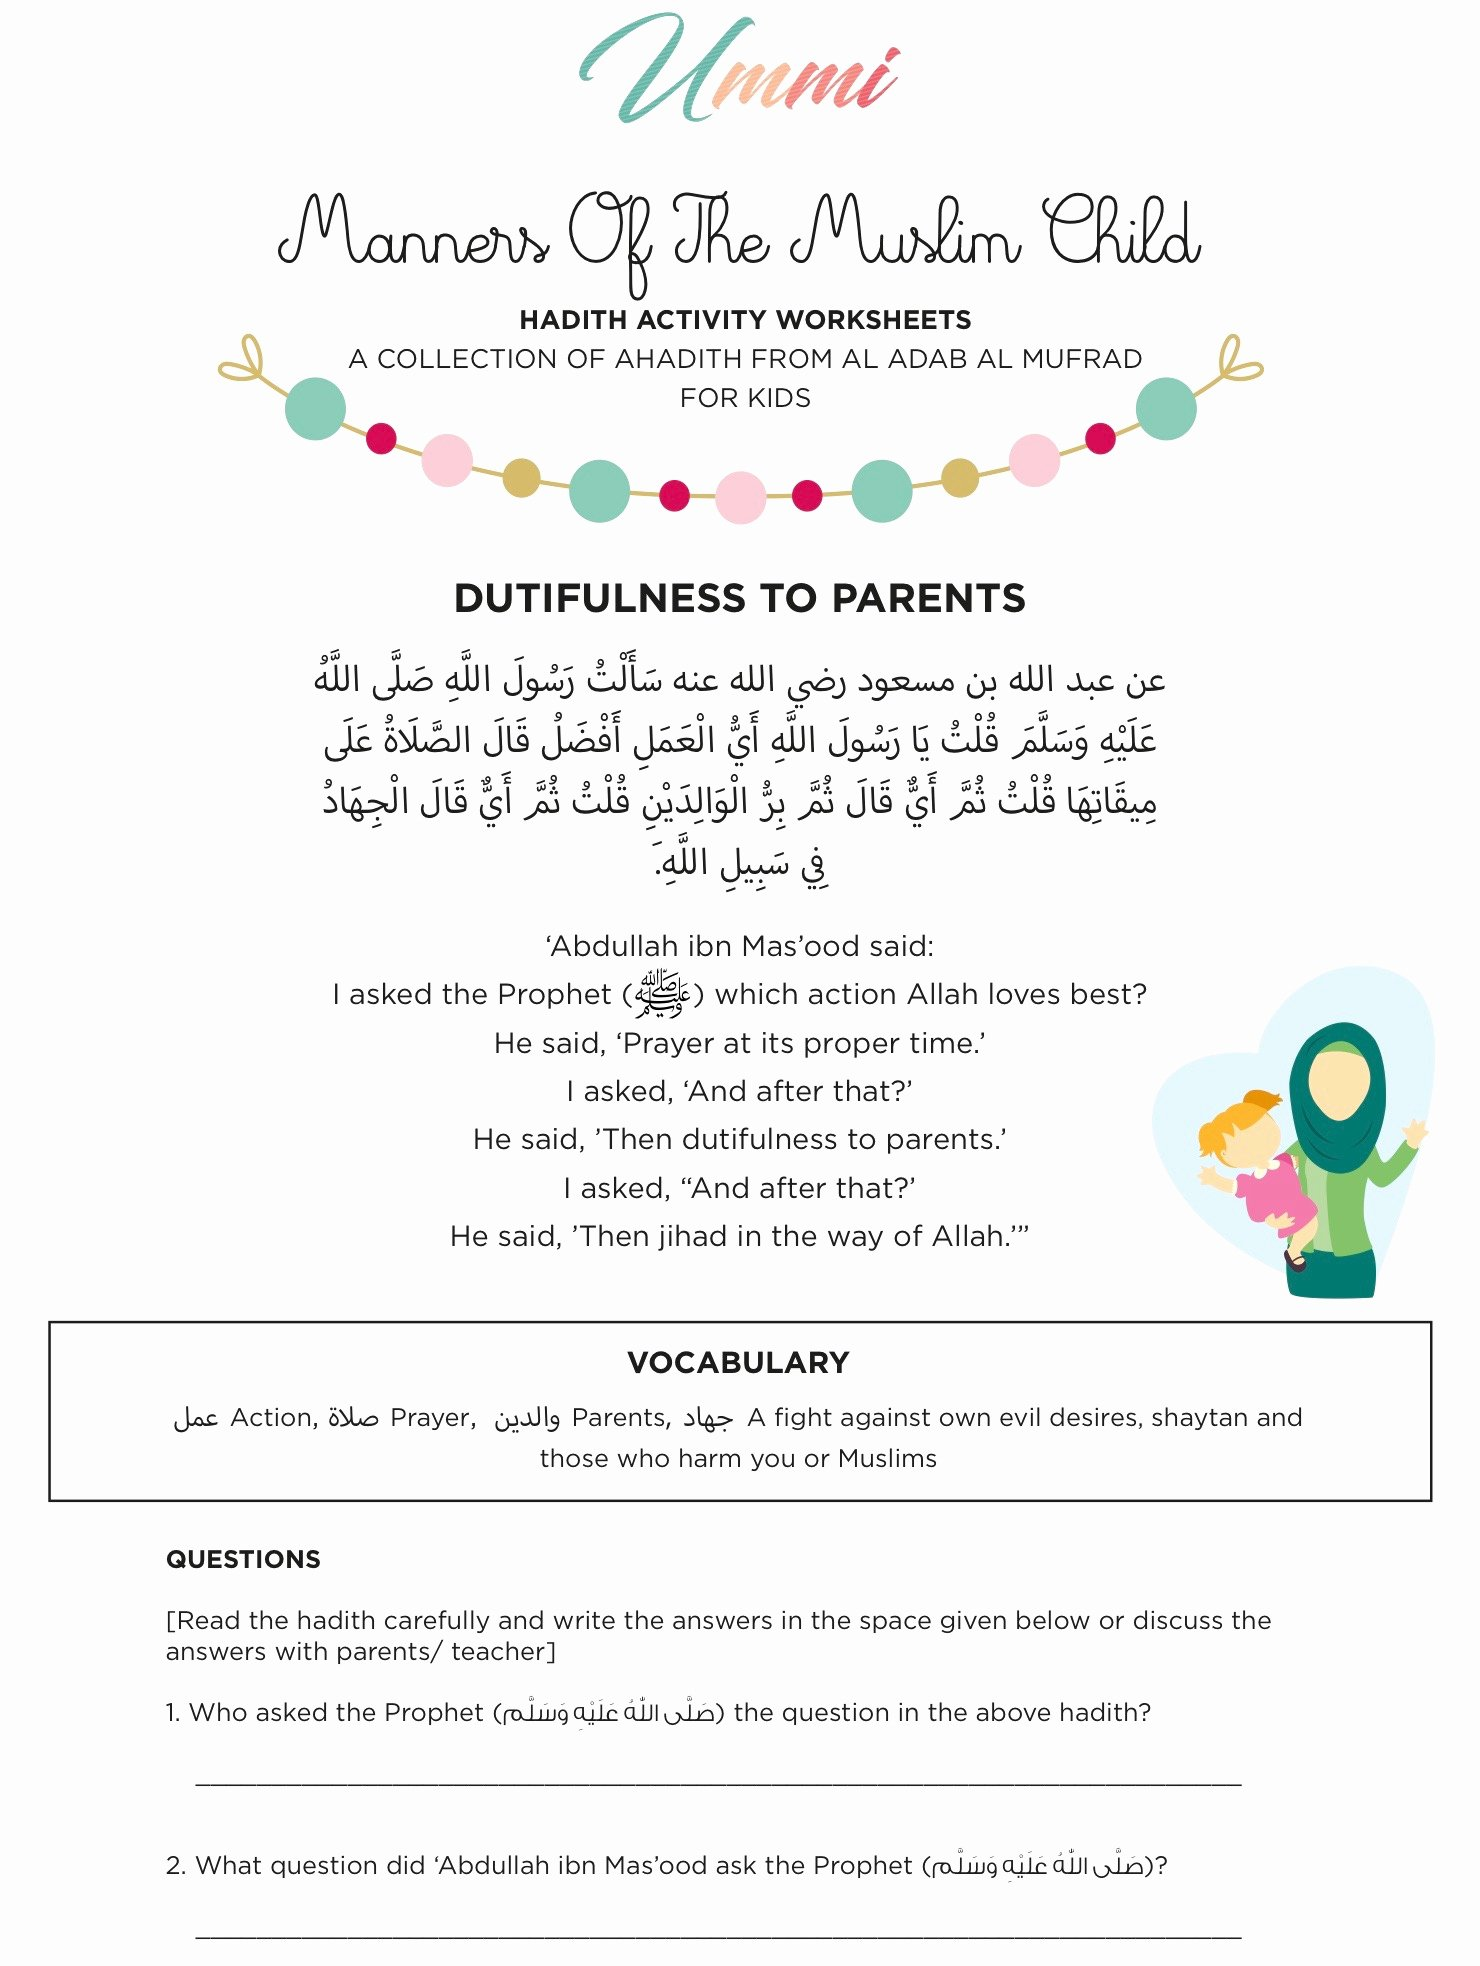 Islamic Worksheets for Preschoolers Ideas Hadith Activity Worksheets for Kids – Ummi – islamic